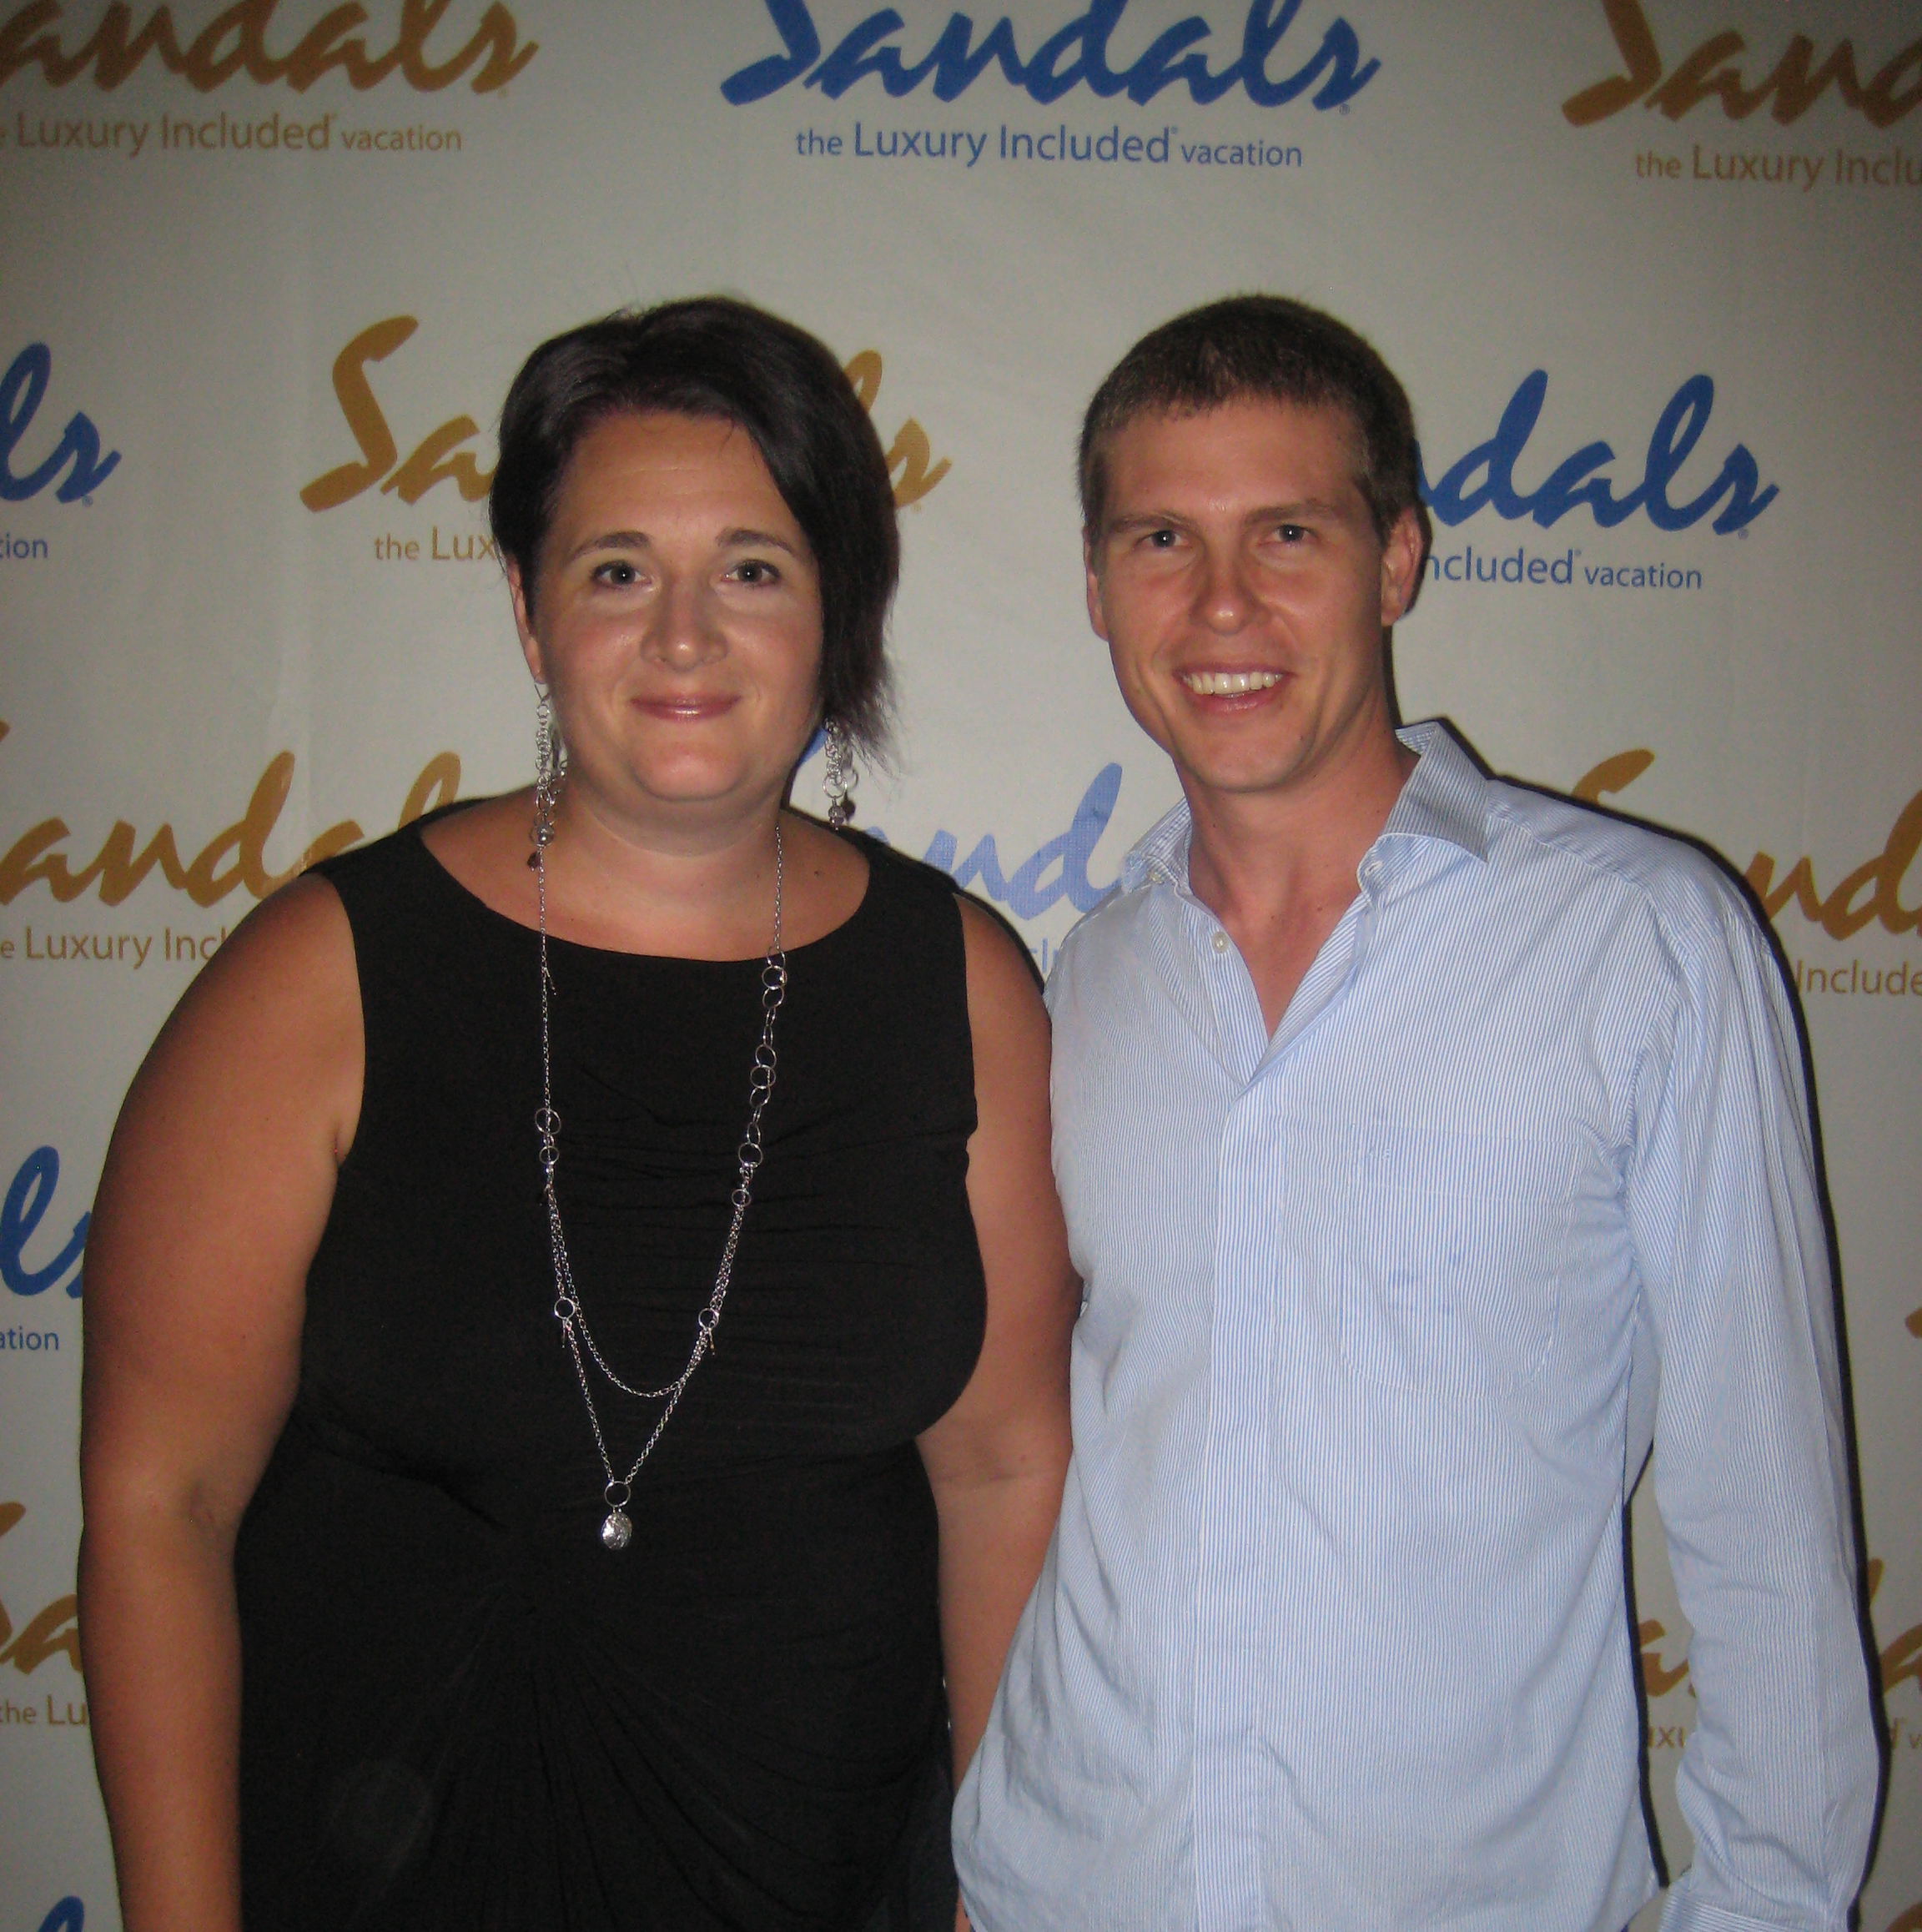 the sandals star awards wow great event ideas toronto